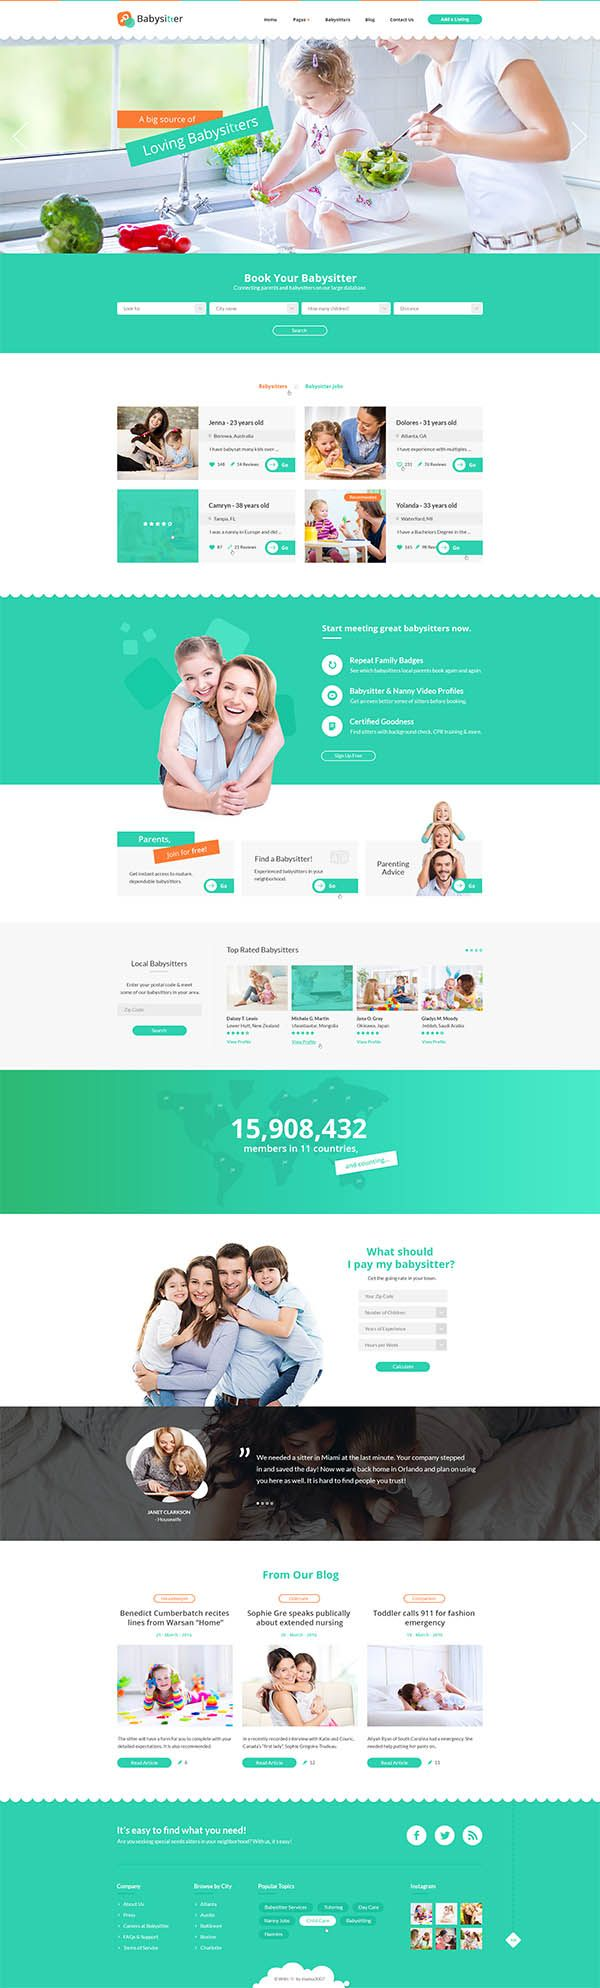 52 best HTML5 Templates images on Pinterest